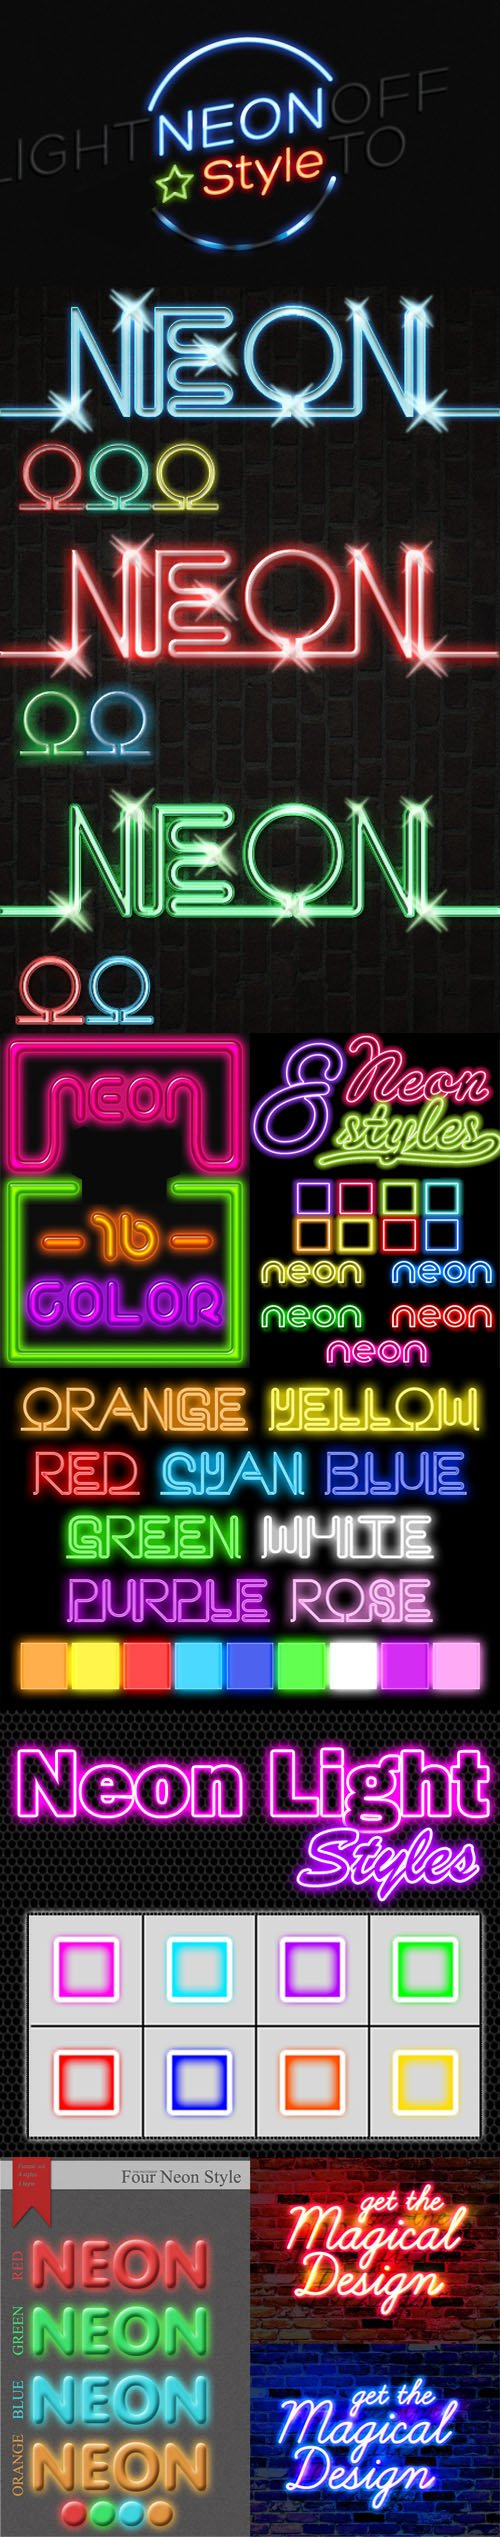 Neon Ligth Styles for Photoshop